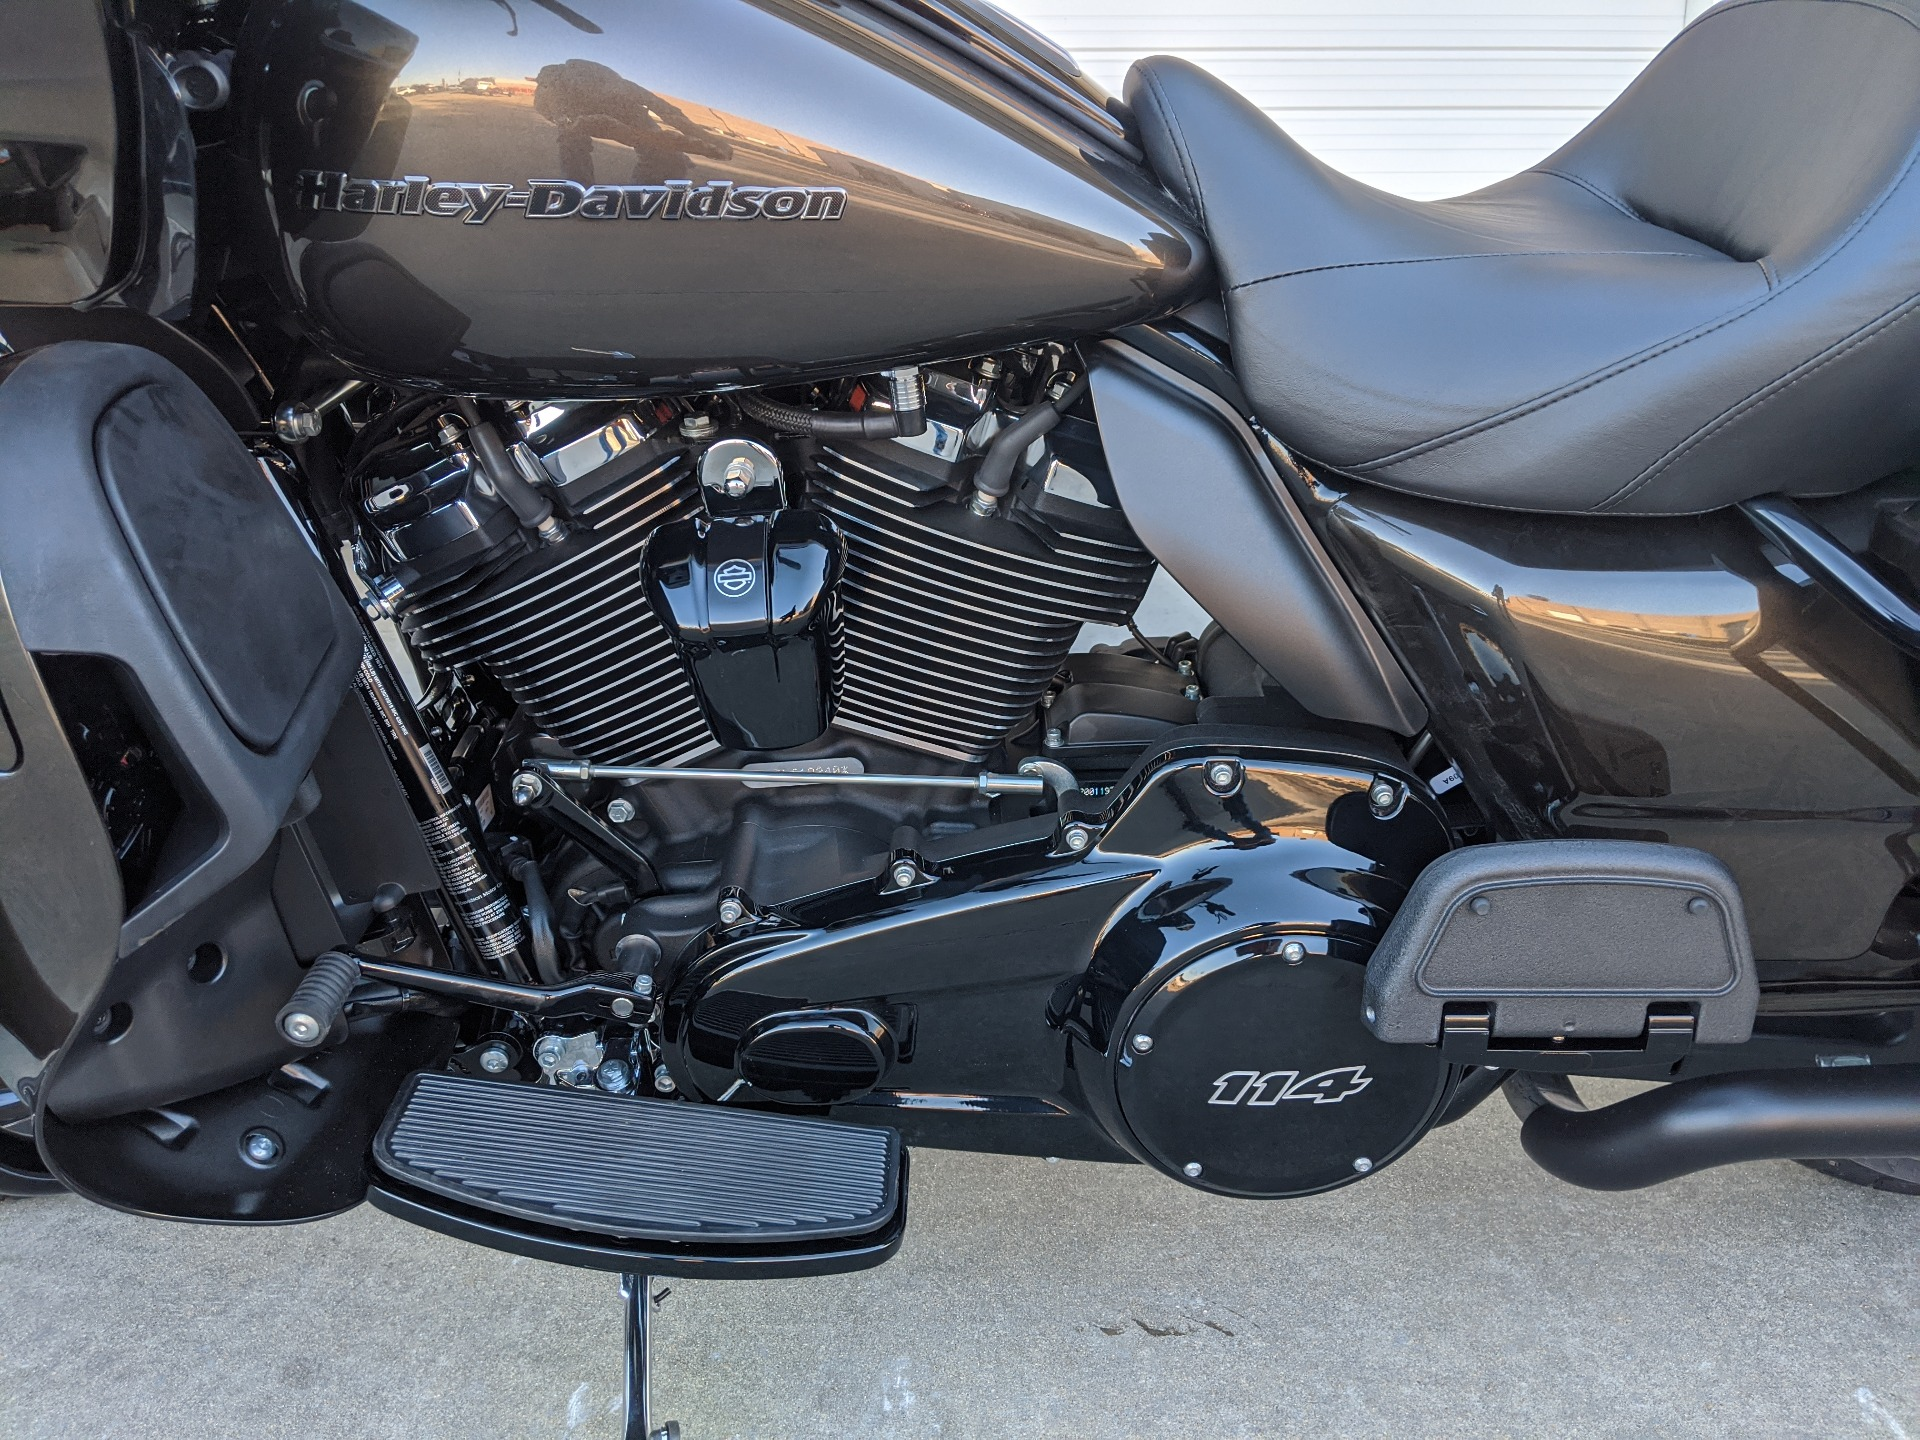 2020 Harley-Davidson Ultra Limited in Monroe, Louisiana - Photo 7